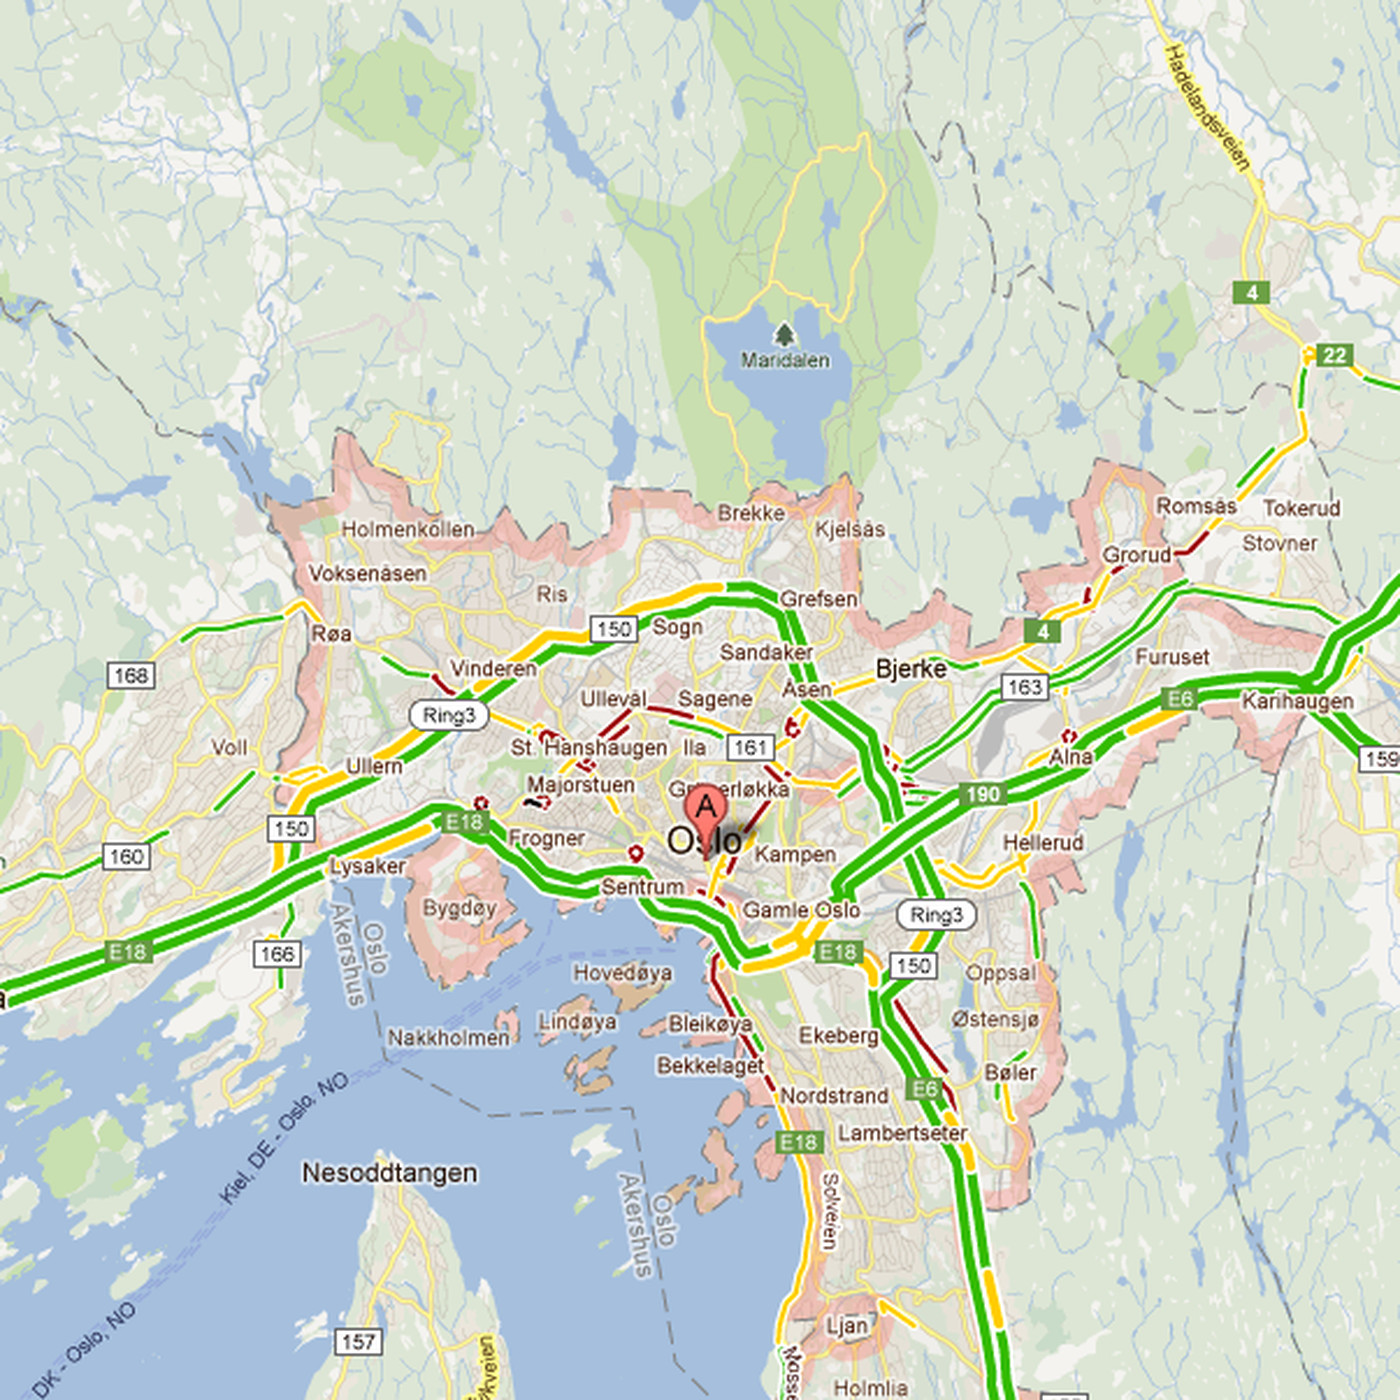 New Zealand Map Google.Google Maps Traffic Conditions Now Available In Hong Kong Norway